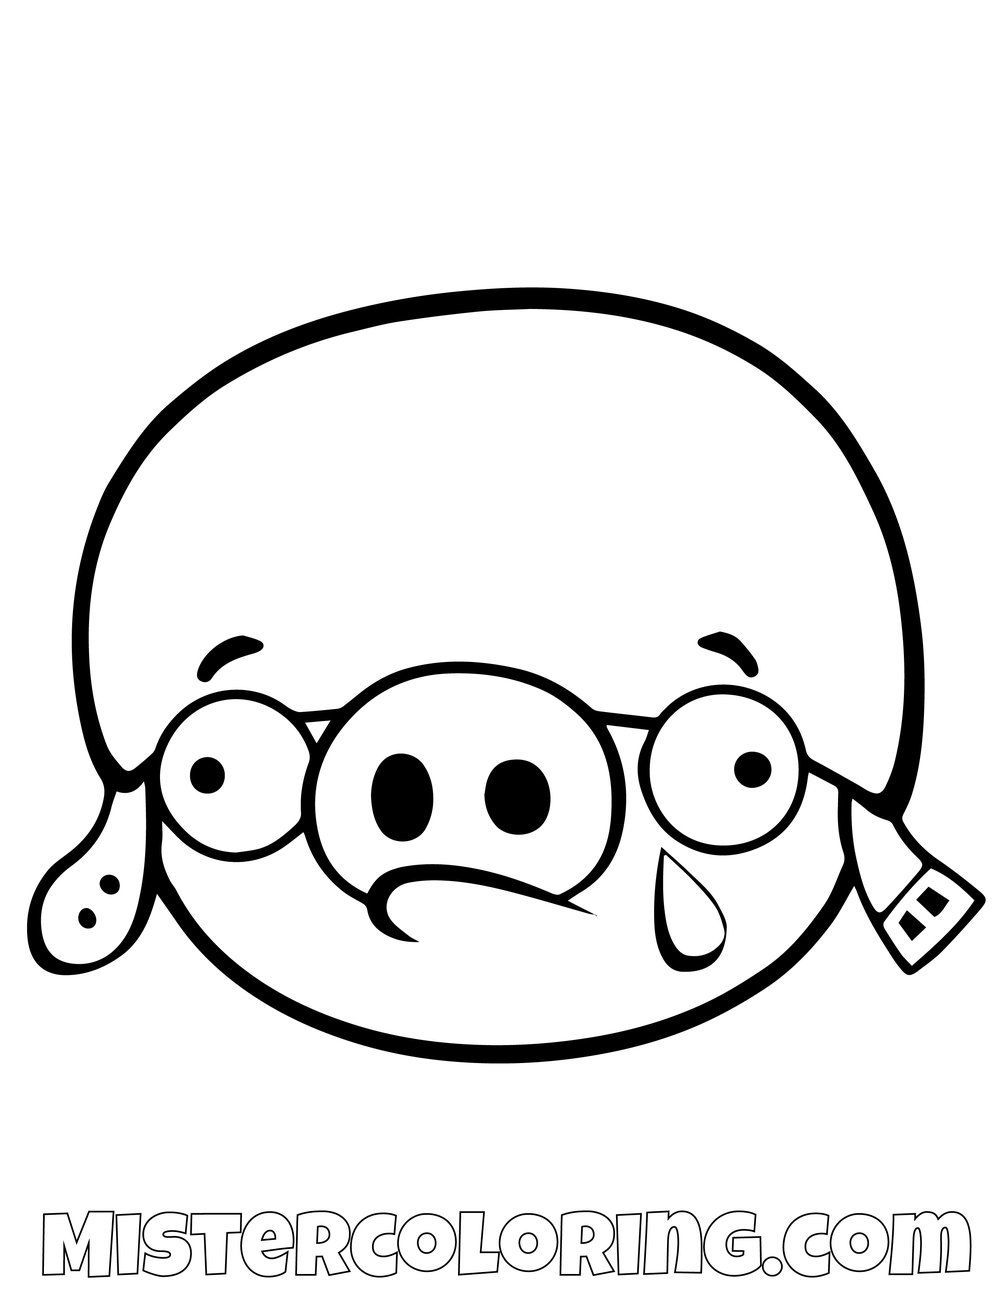 Russian Pig Crying Angry Birds Coloring Pages Bird Coloring Pages Angry Birds Pigs Coloring Pages In 2021 Angry Birds Pigs Bird Coloring Pages Angry Birds